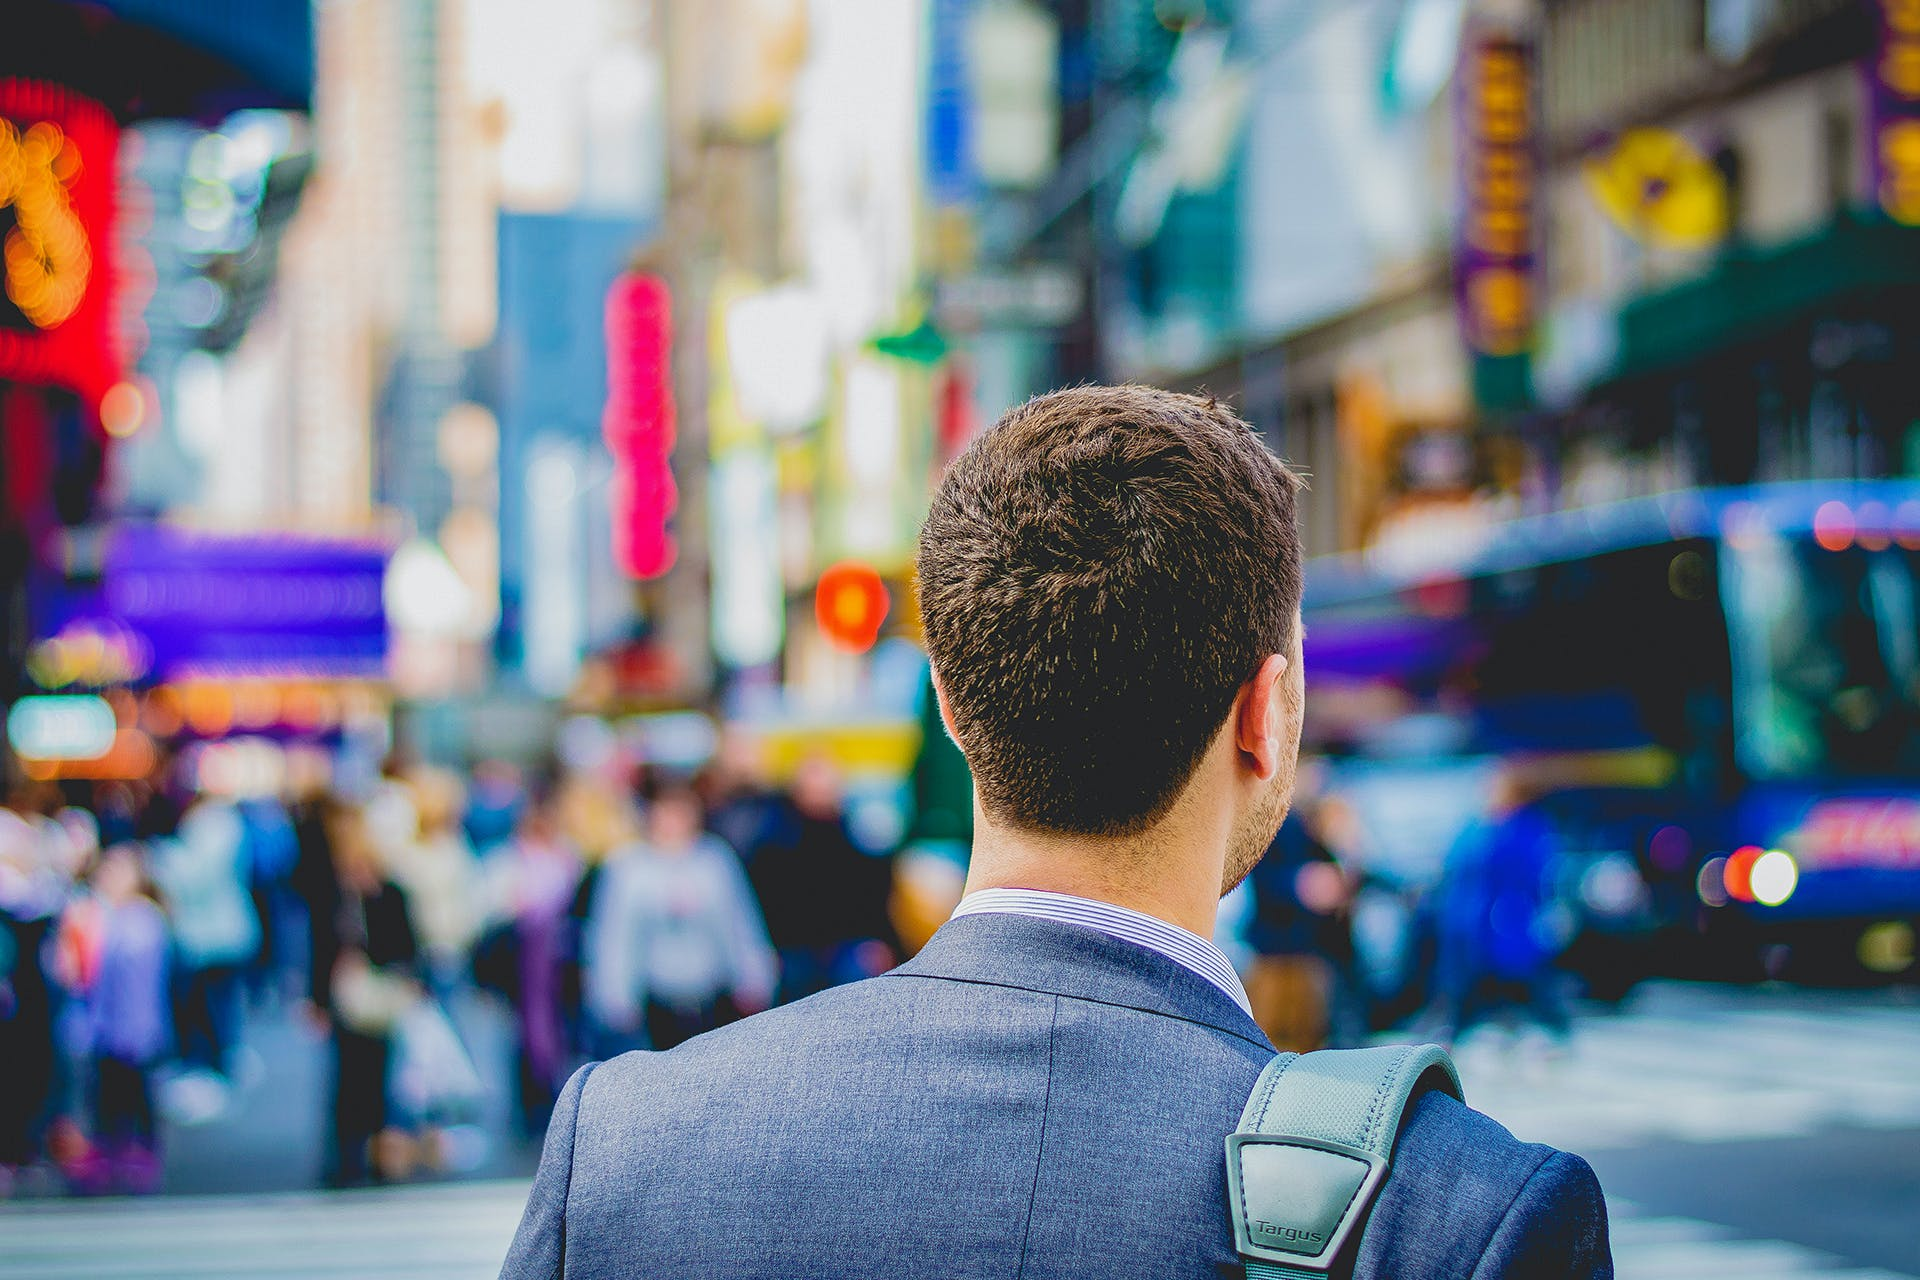 Man in a cityscape with a satchel and suit.